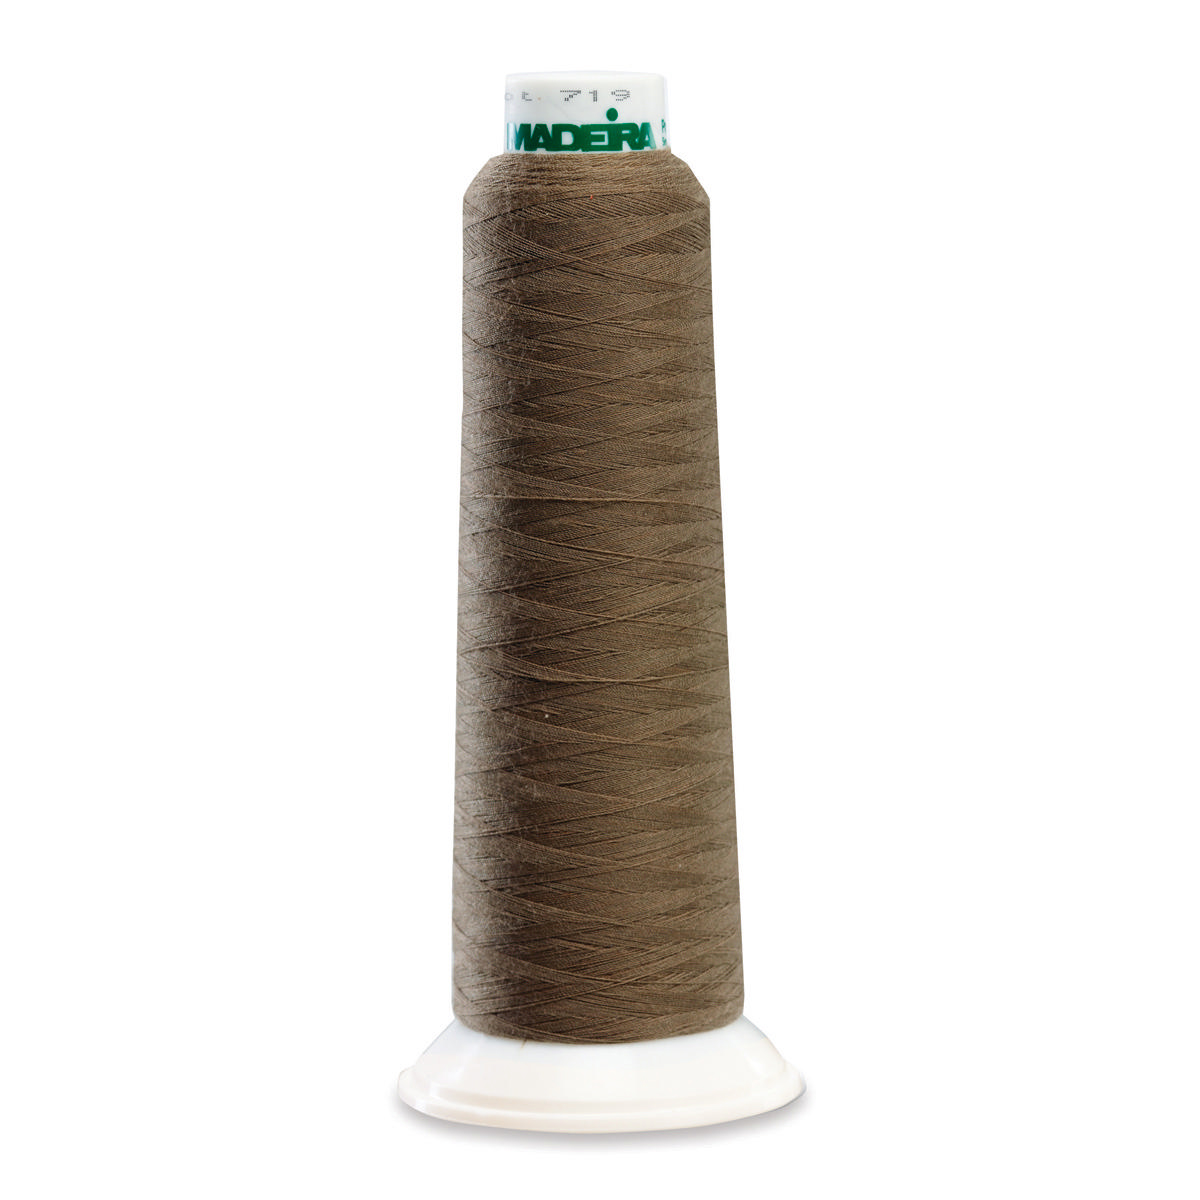 9280 Dark Taupe Poly Serger Thread Madeira Aerolock